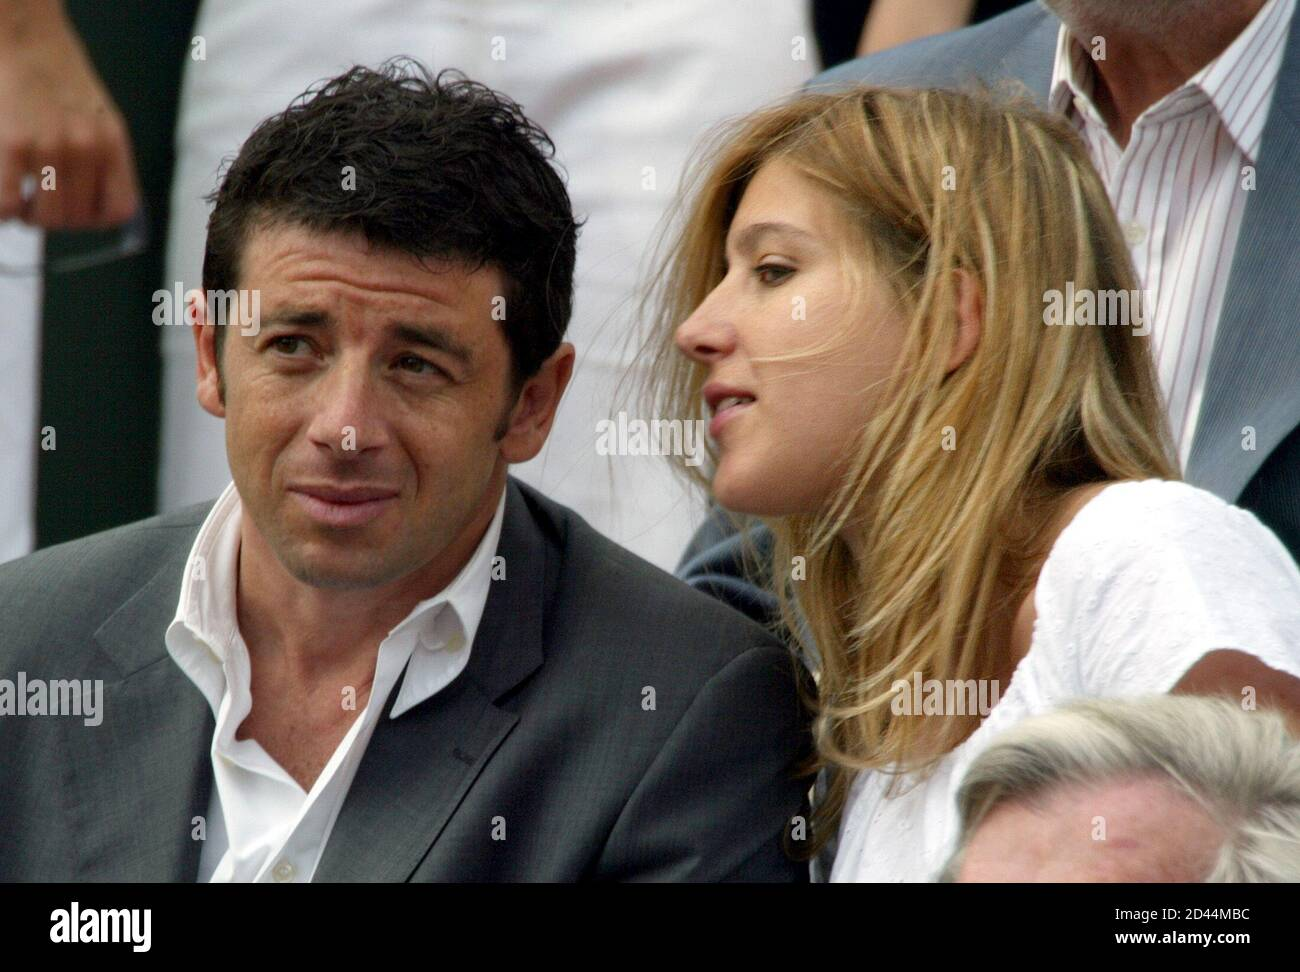 French Singer Patrick Bruel Wife High Resolution Stock Photography And Images Alamy